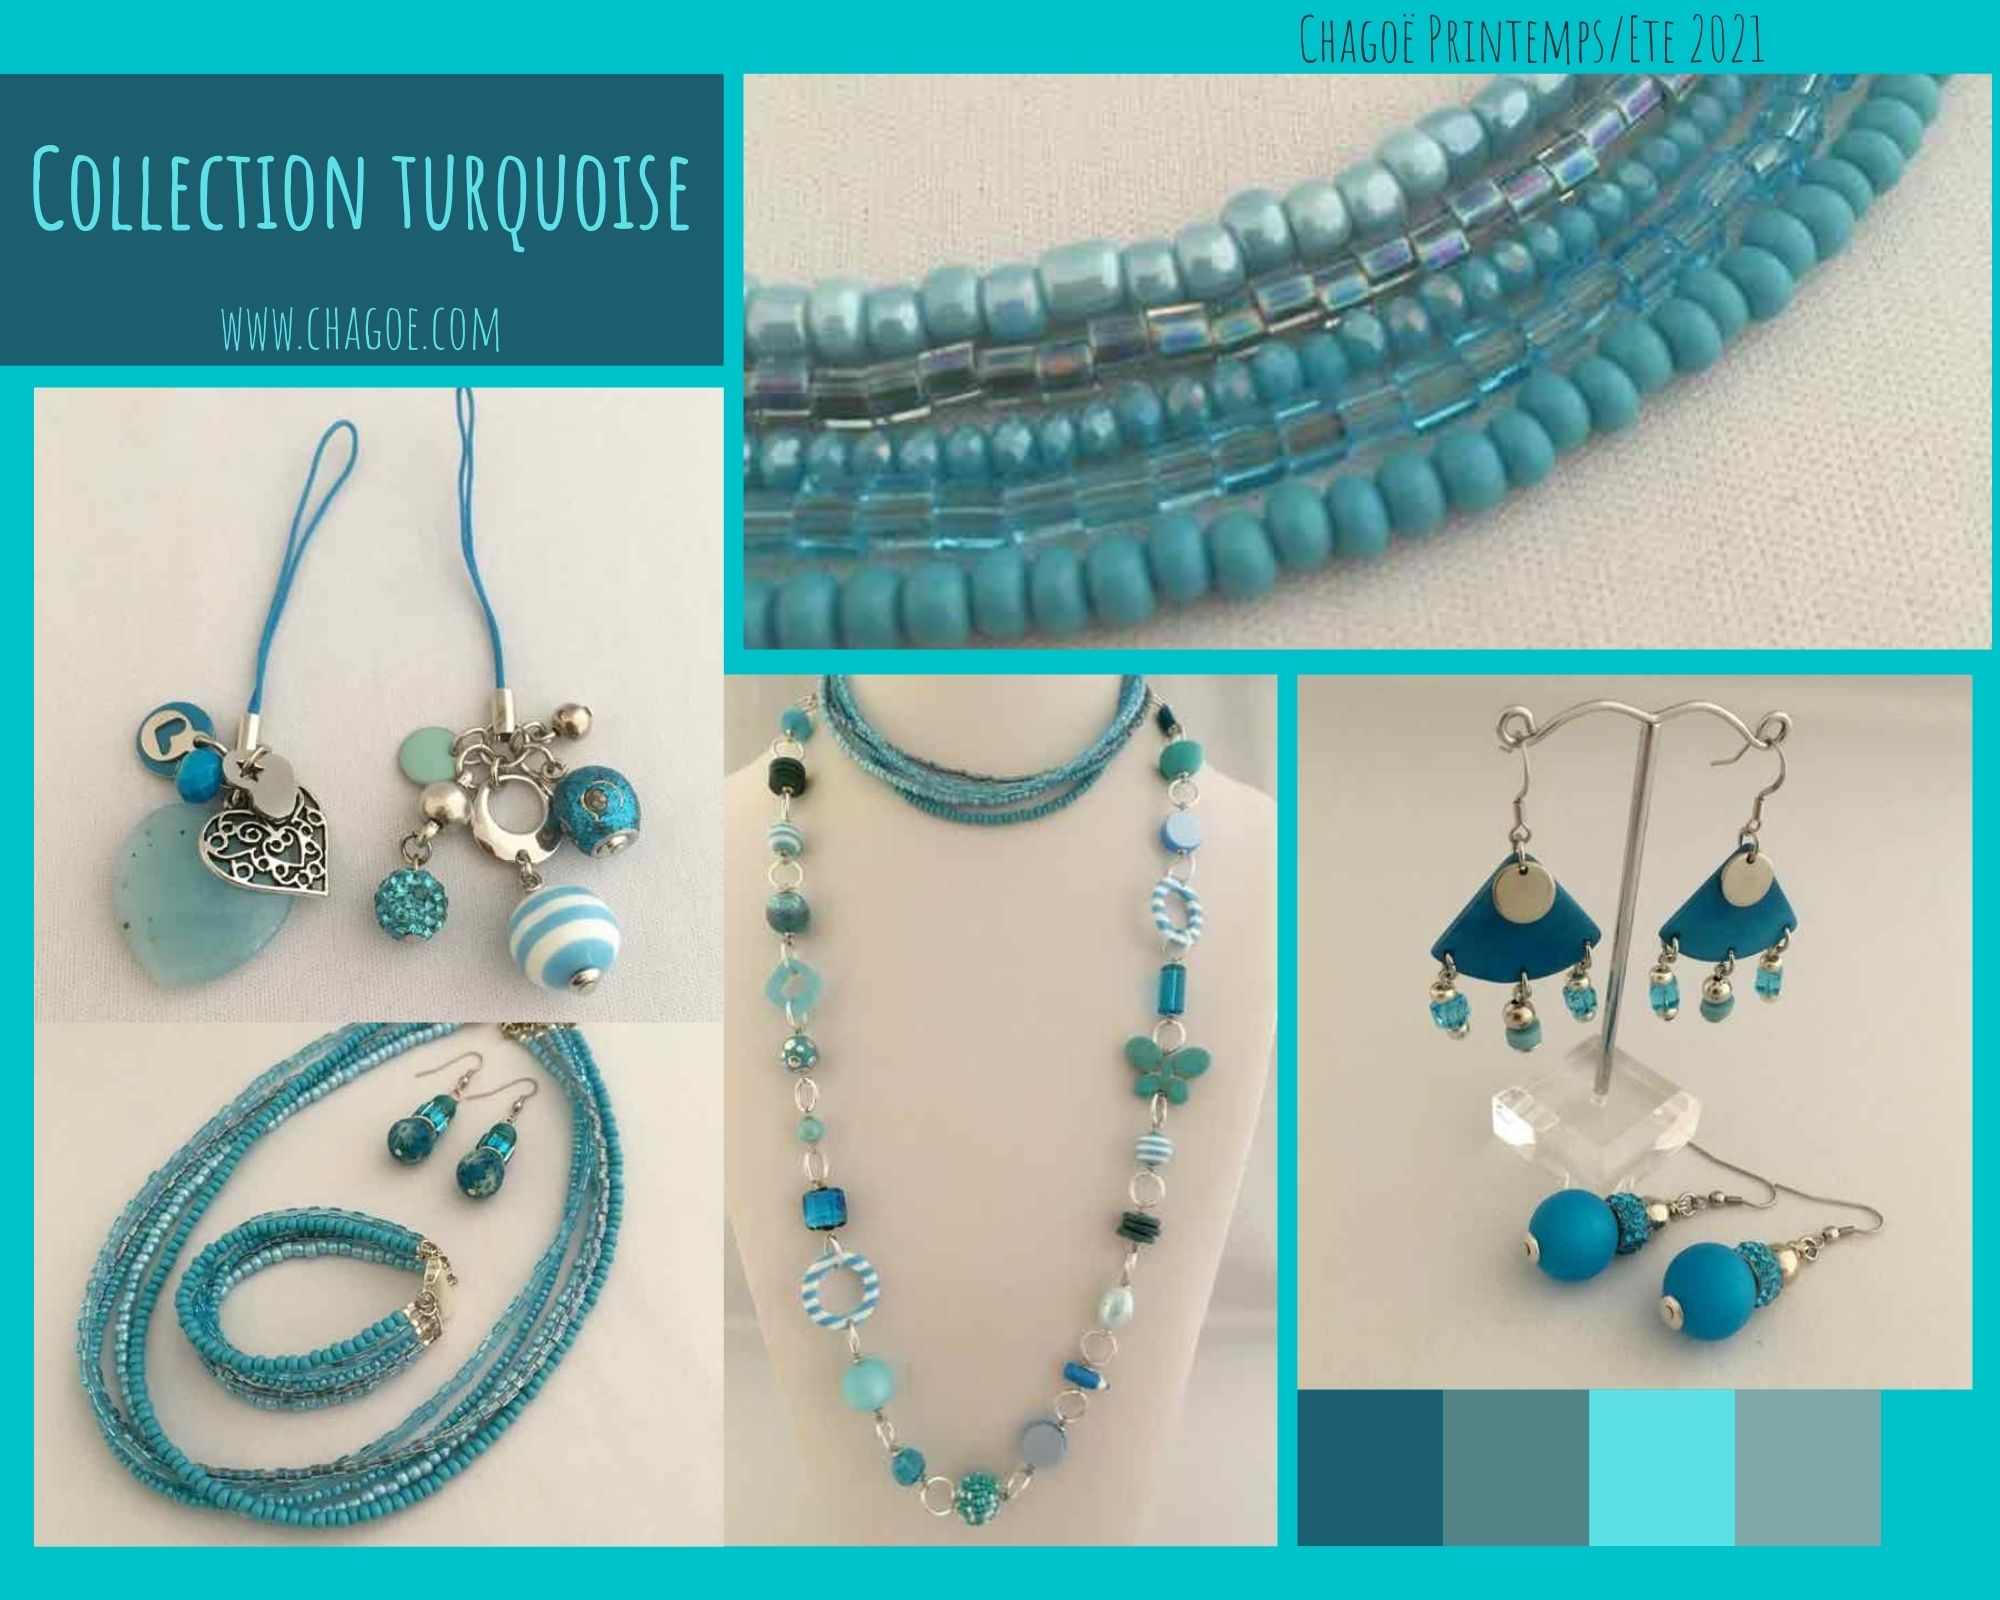 Collection TURQUOISE Chagoë 2021